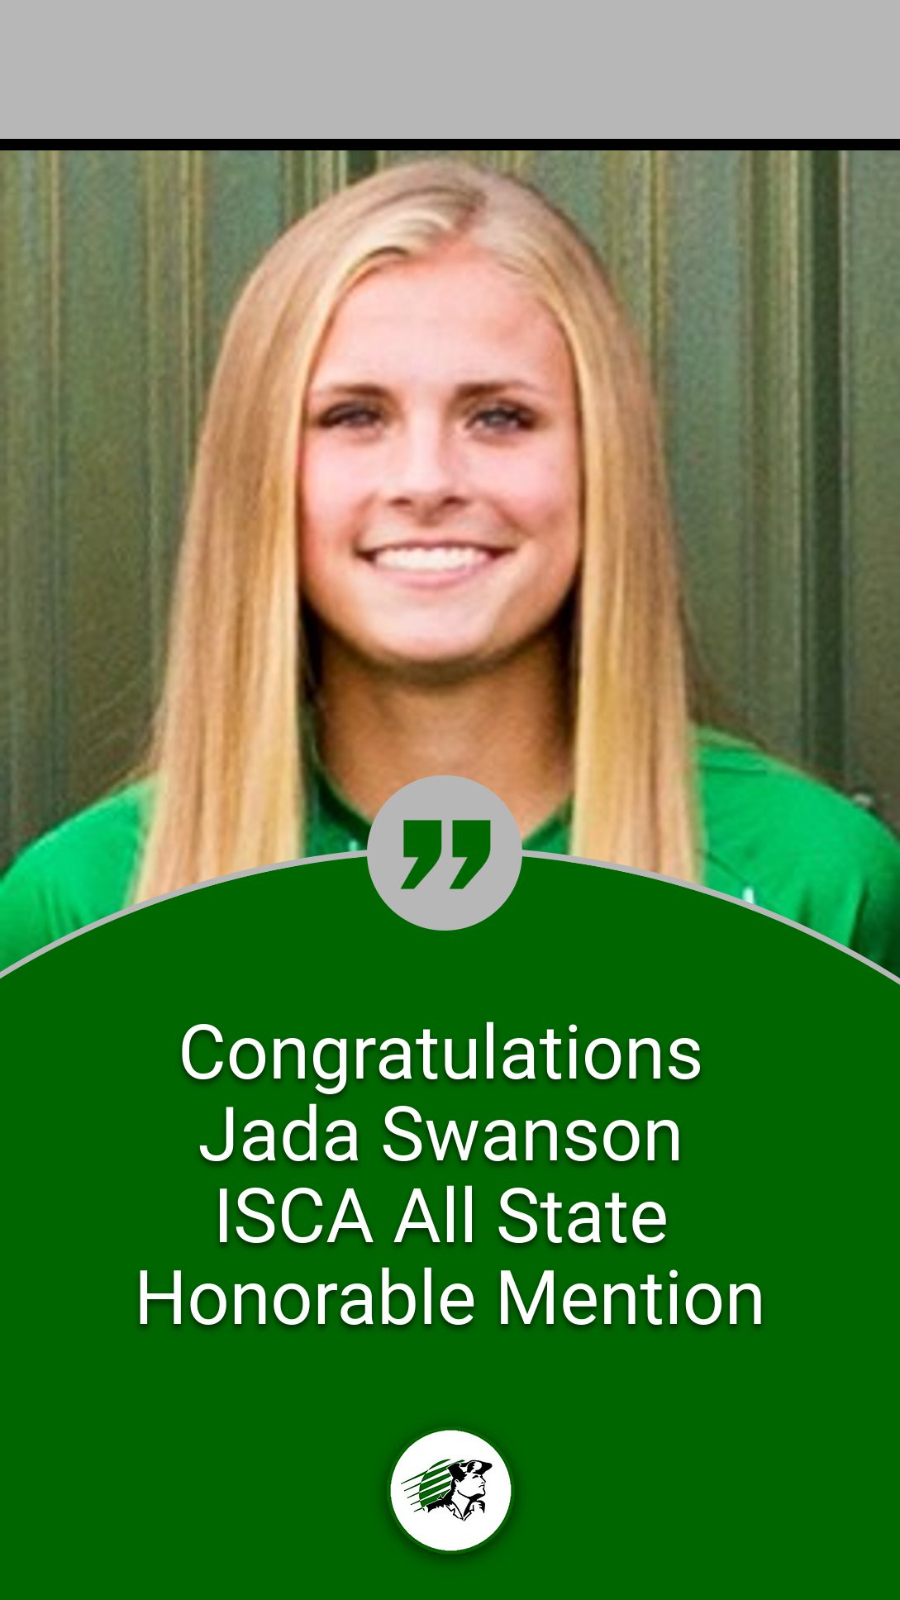 Jada Swanson Named ISCA All State Honorable Mention